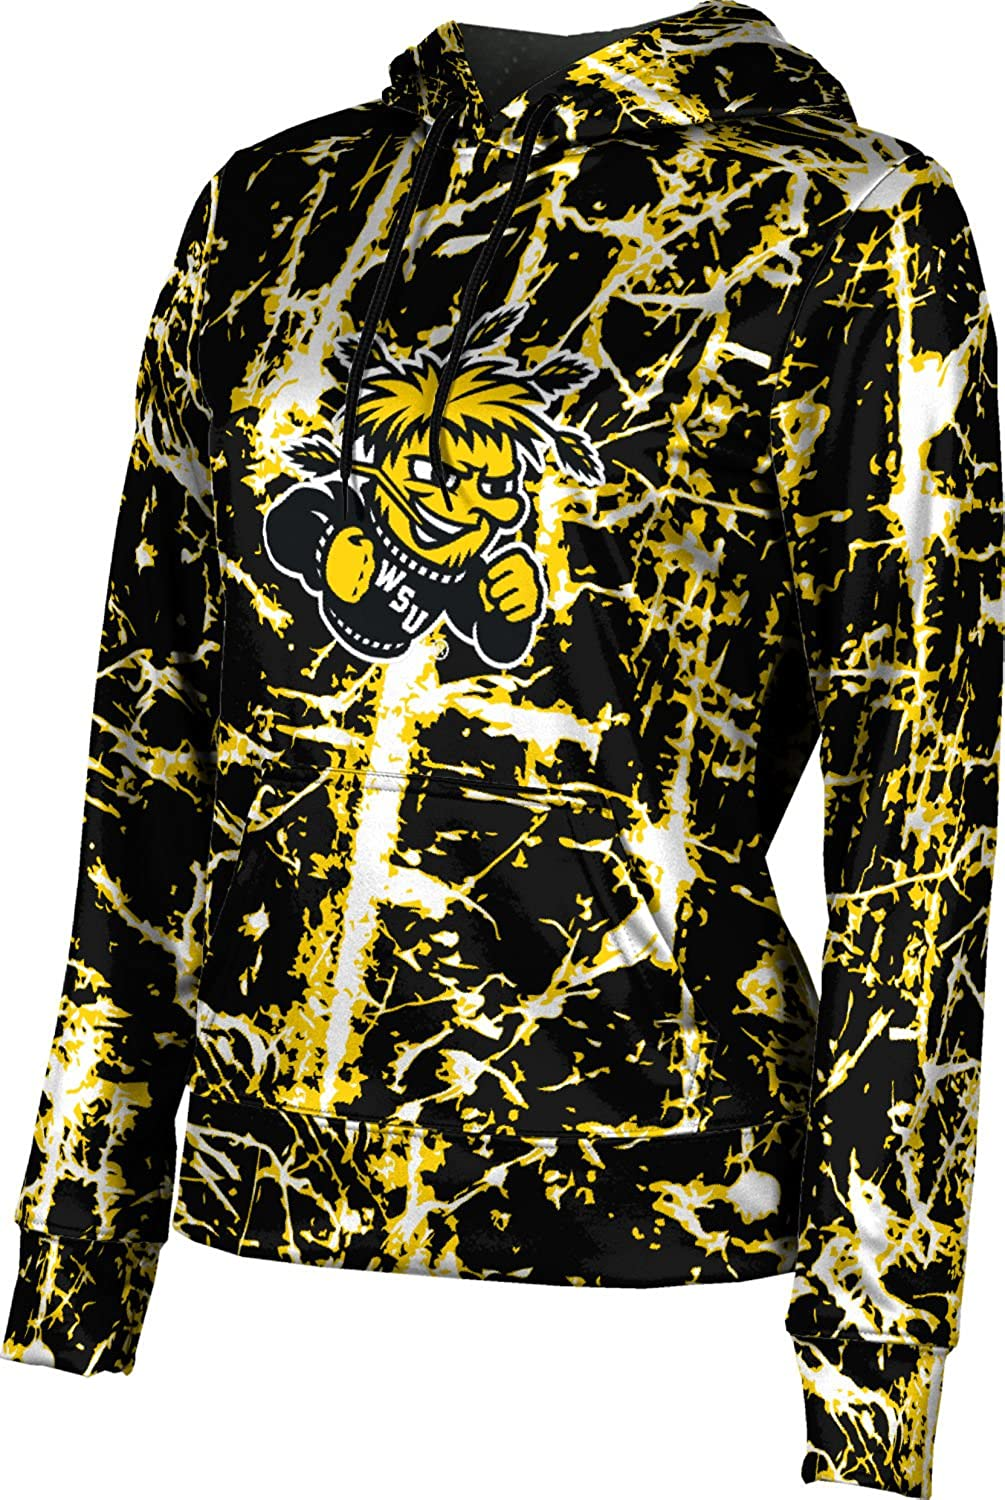 ProSphere Wichita State University Pullover Hoodie Scho Now on sale Max 48% OFF Women's